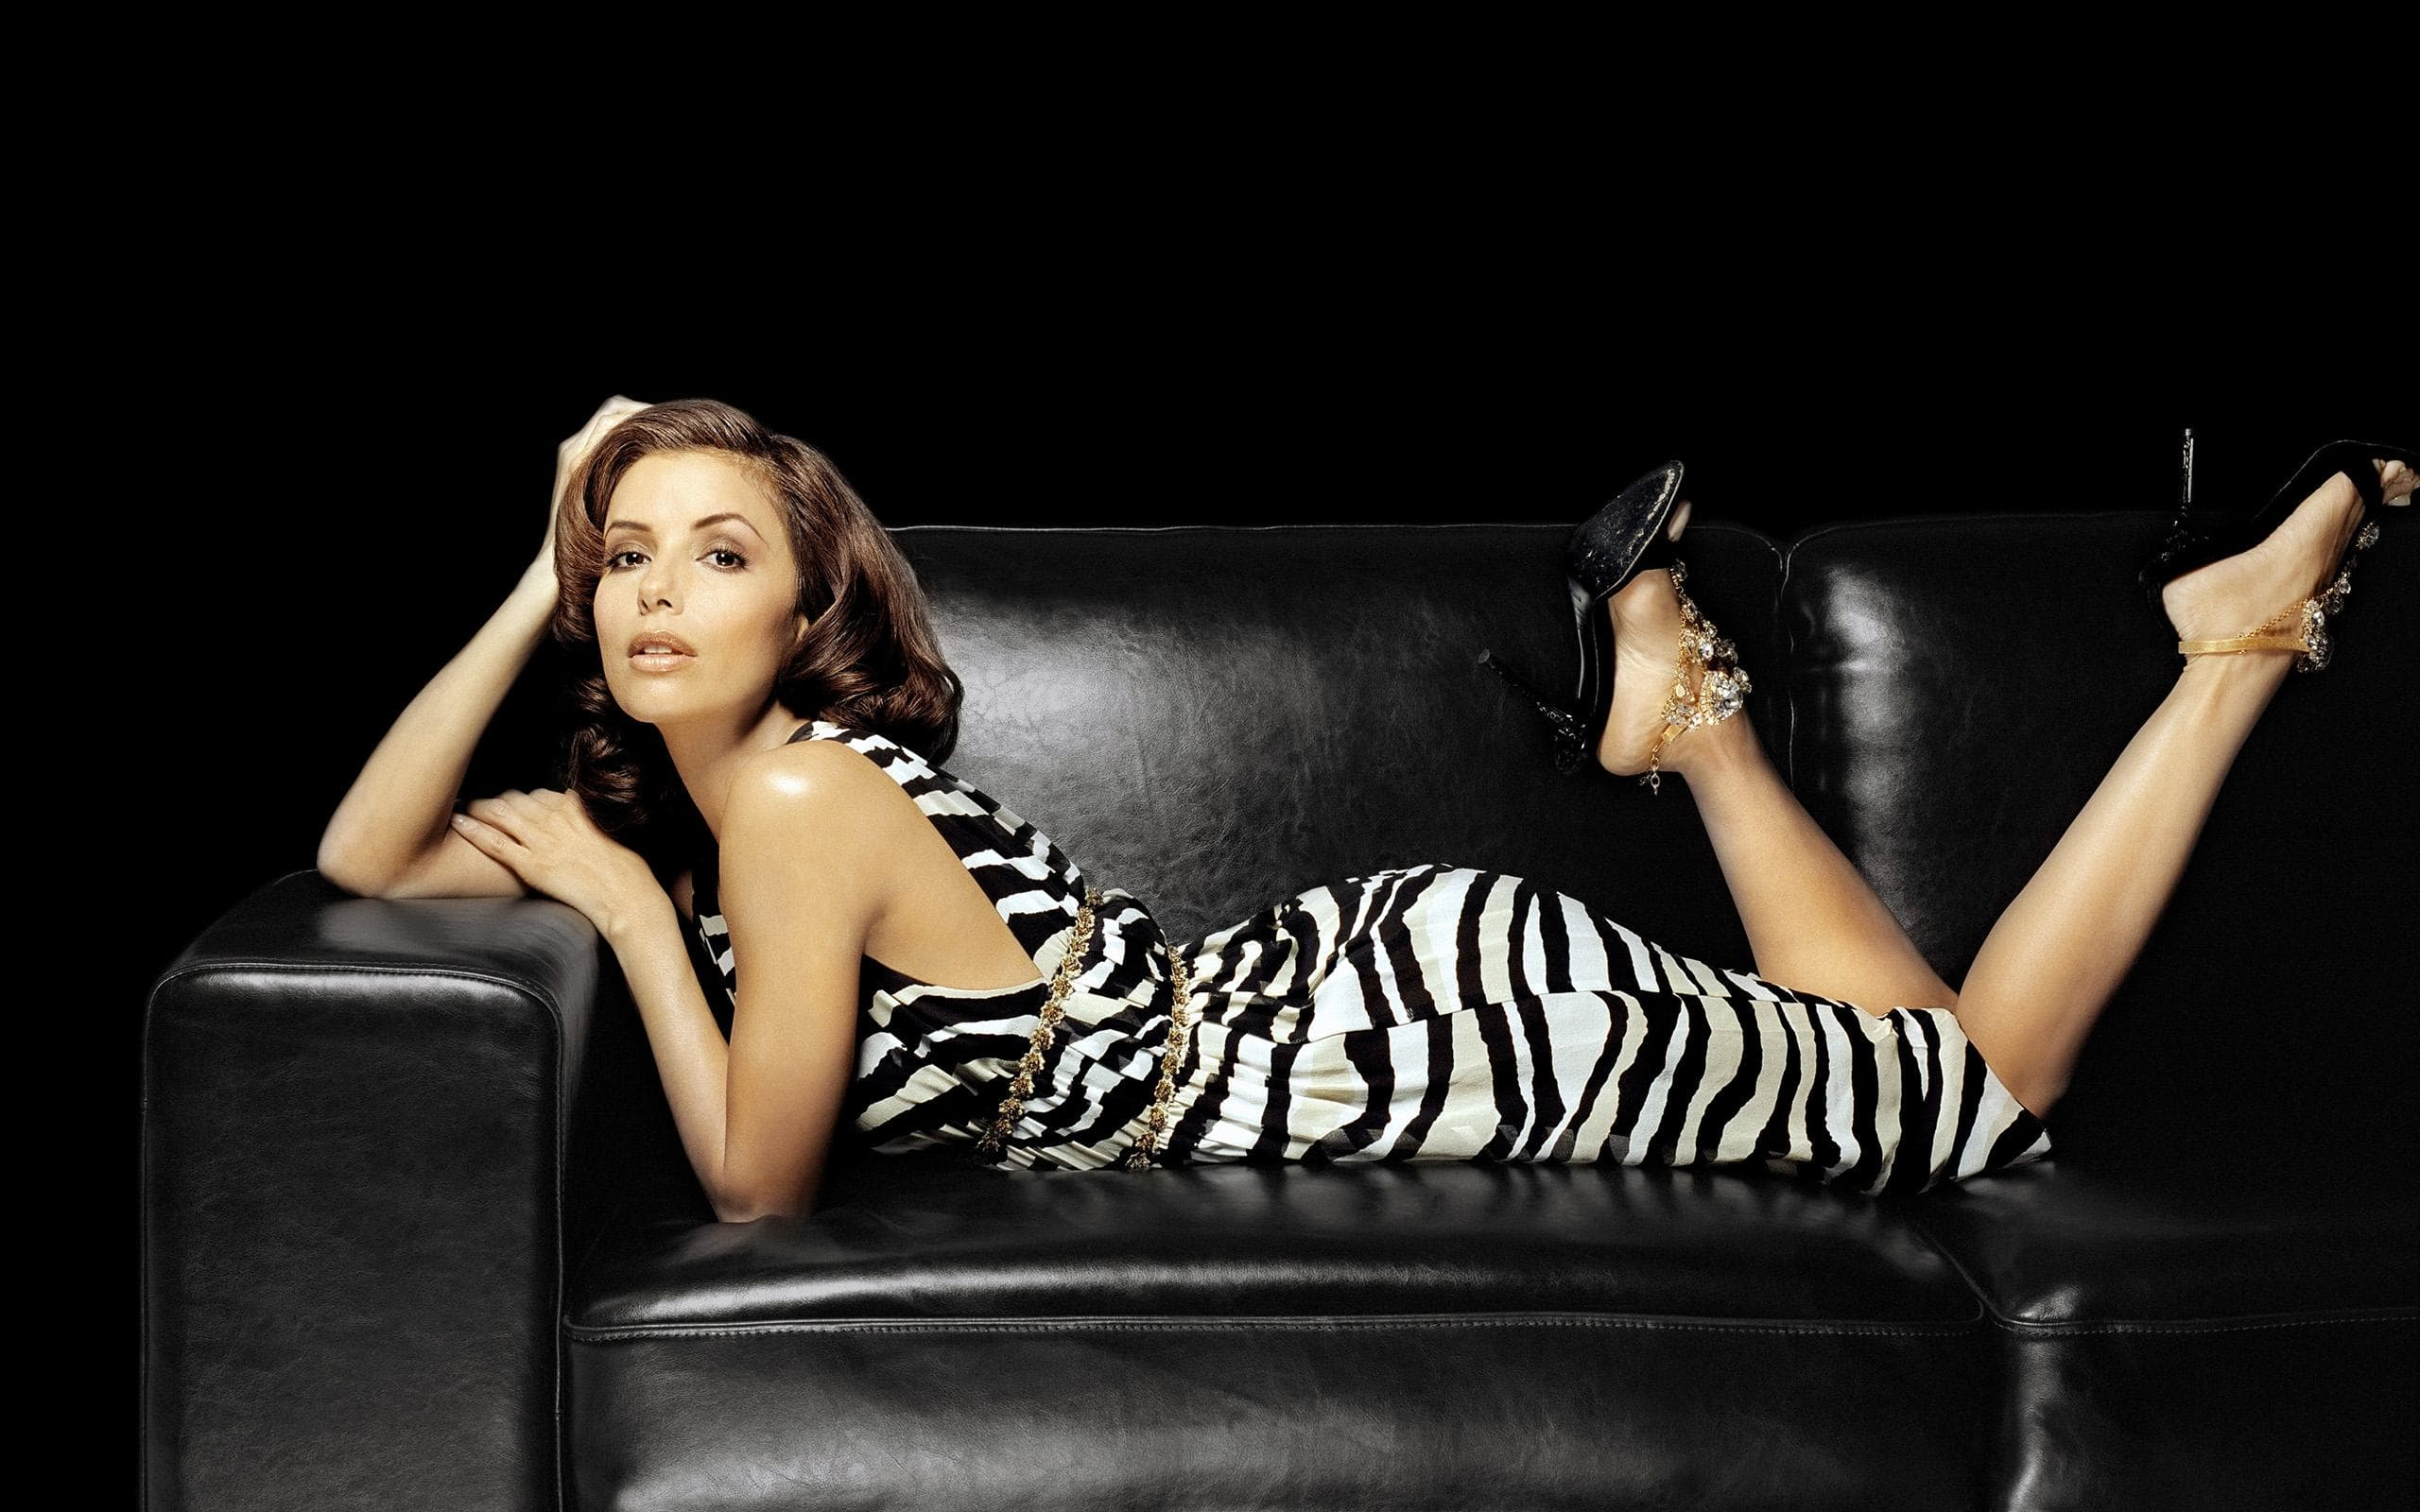 Eva Longoria Wallpapers hd